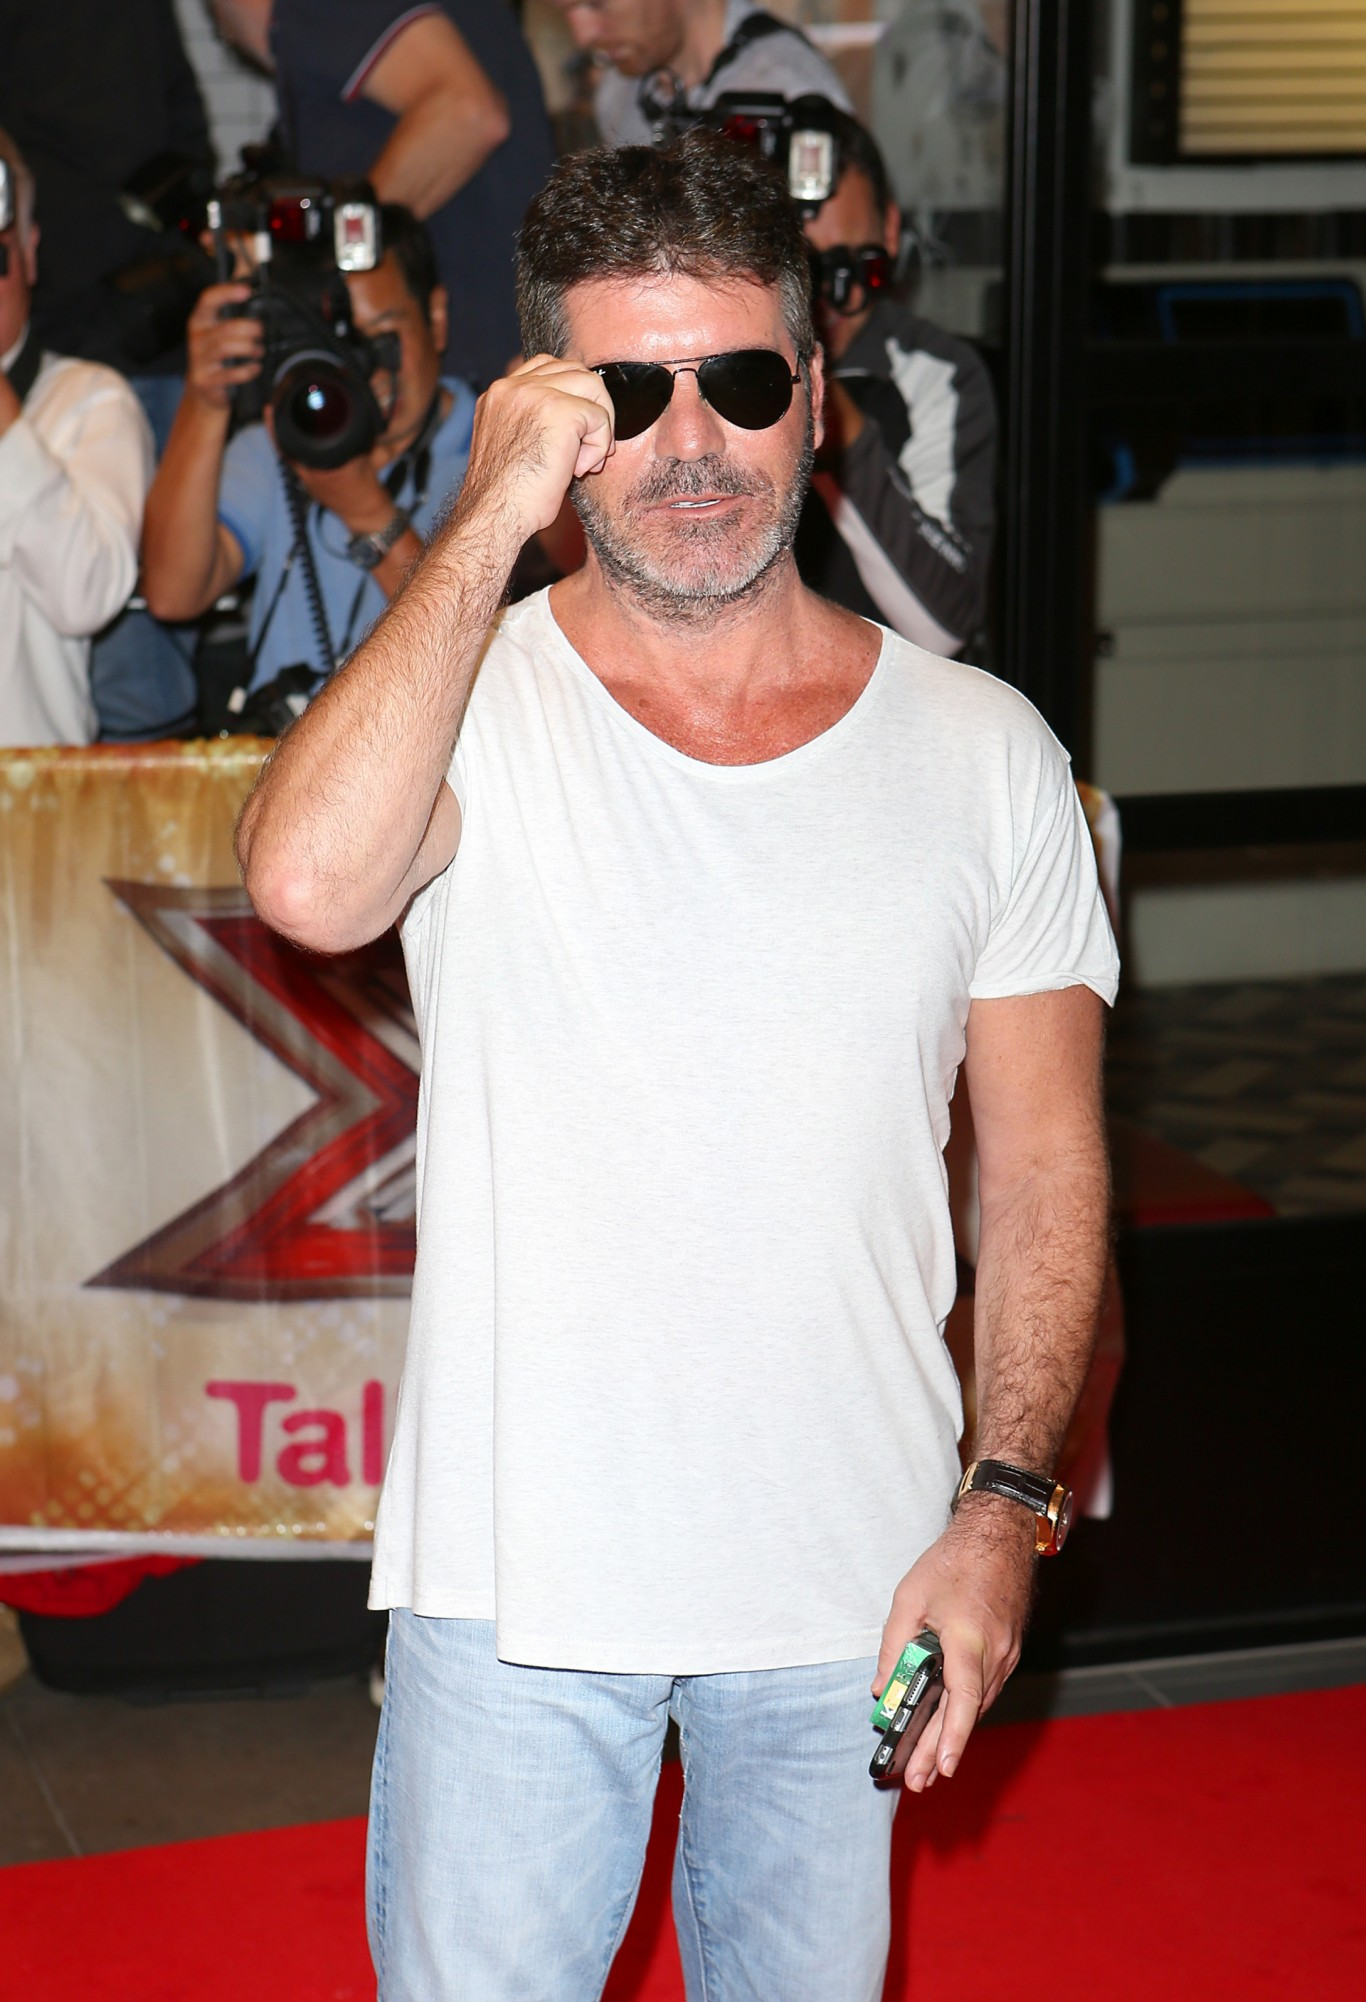 Simon Cowell in sunglasses at X Factor launch